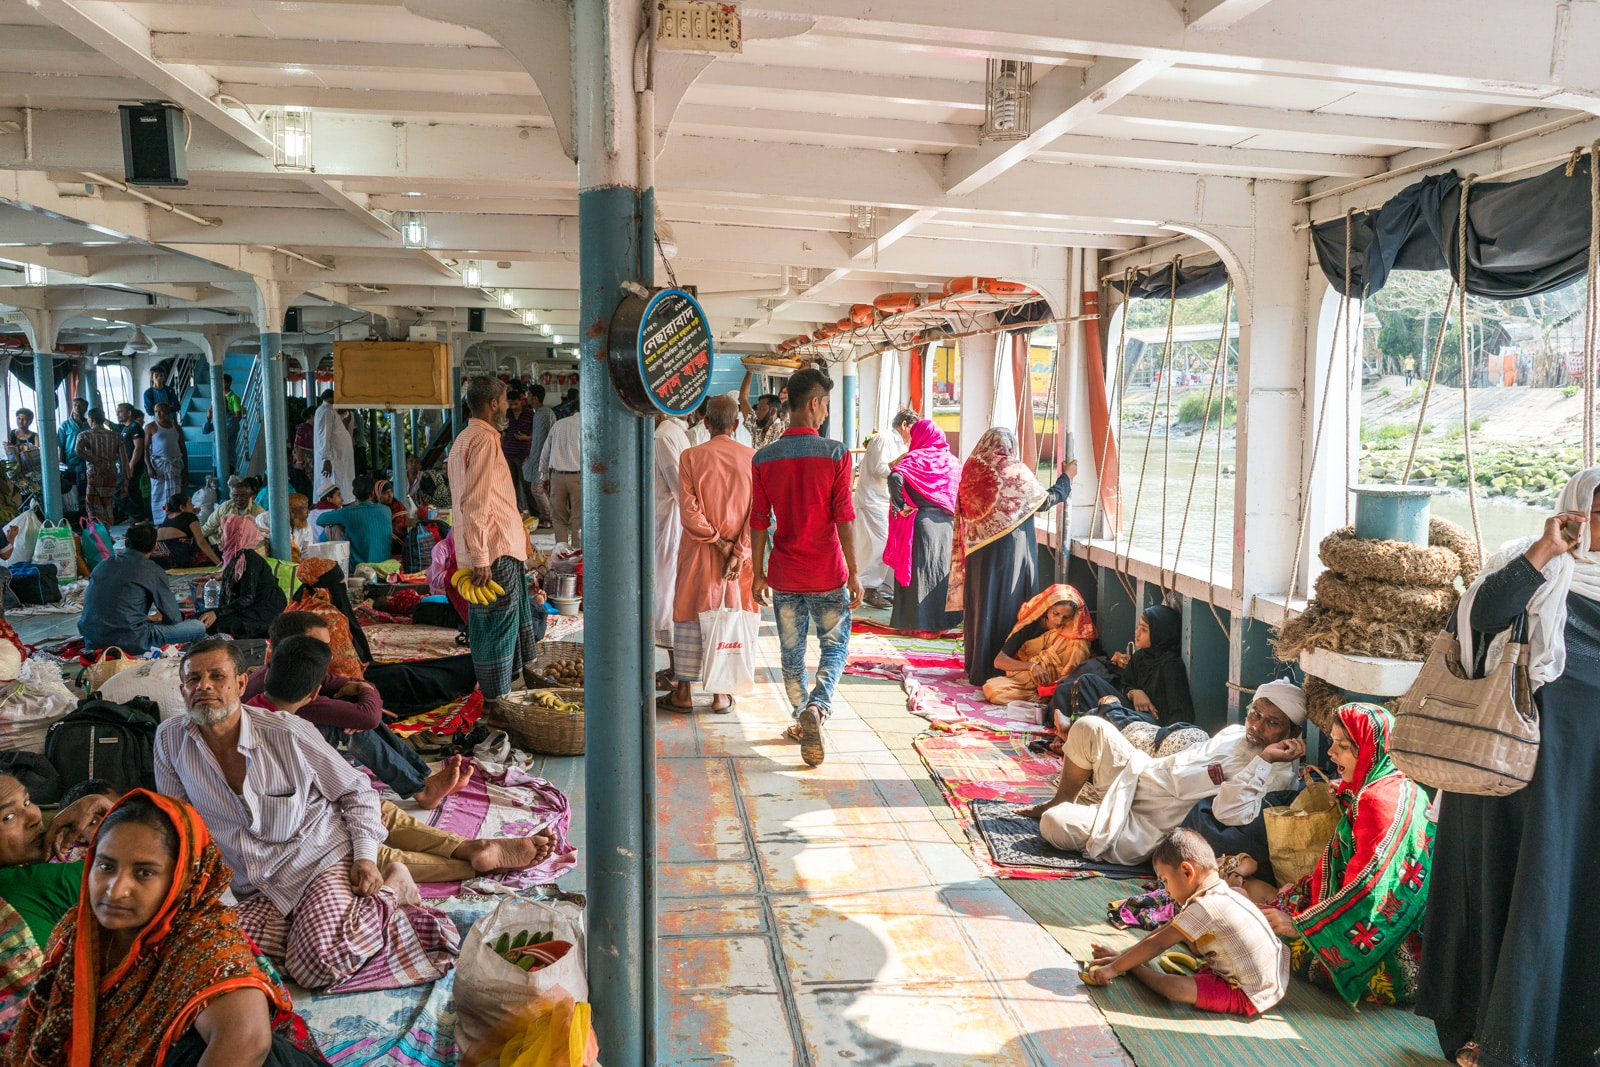 Guide to launches in Bangladesh - Deck class/floor class of launch - Lost With Purpose travel blog